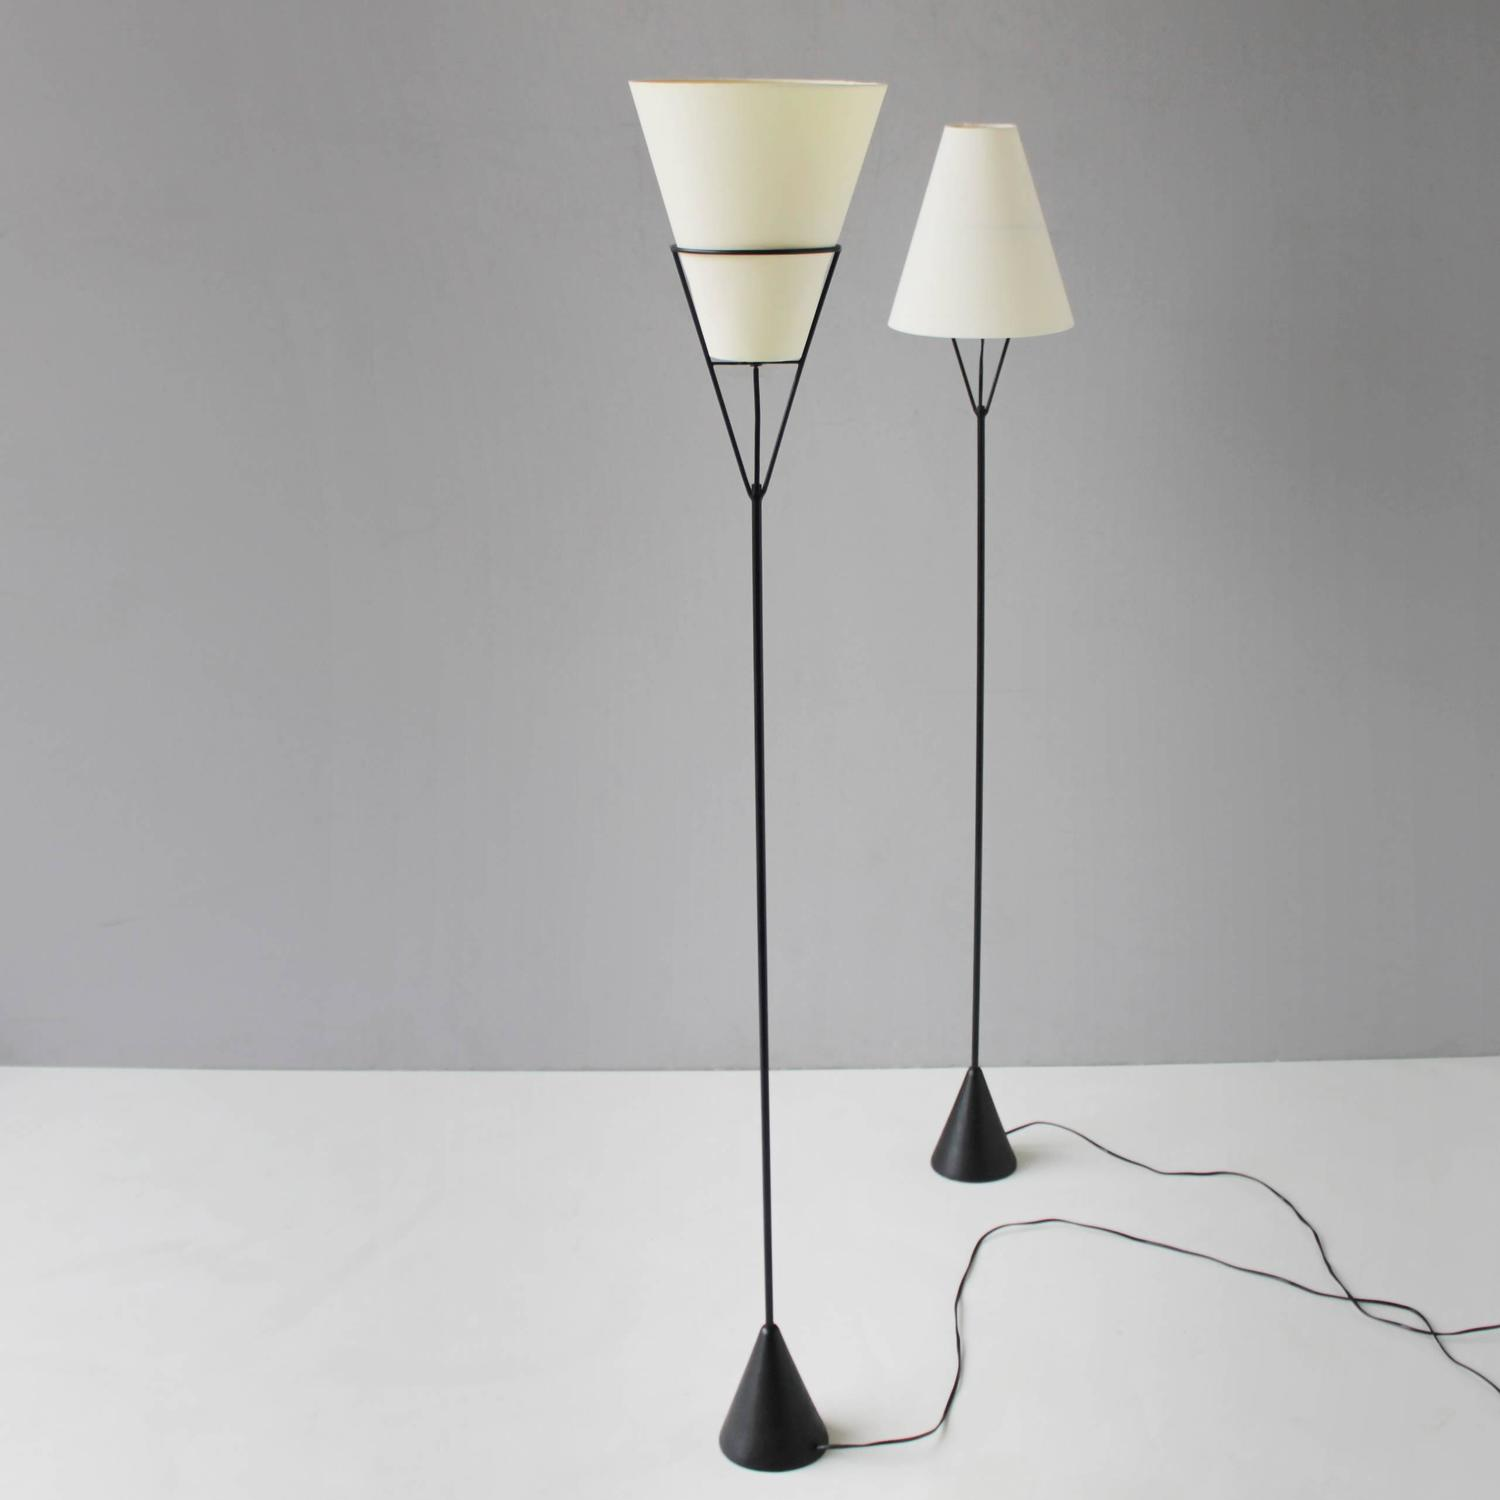 Pair Of Vice Versa Floor Lamps By Carl Aubck For Sale At